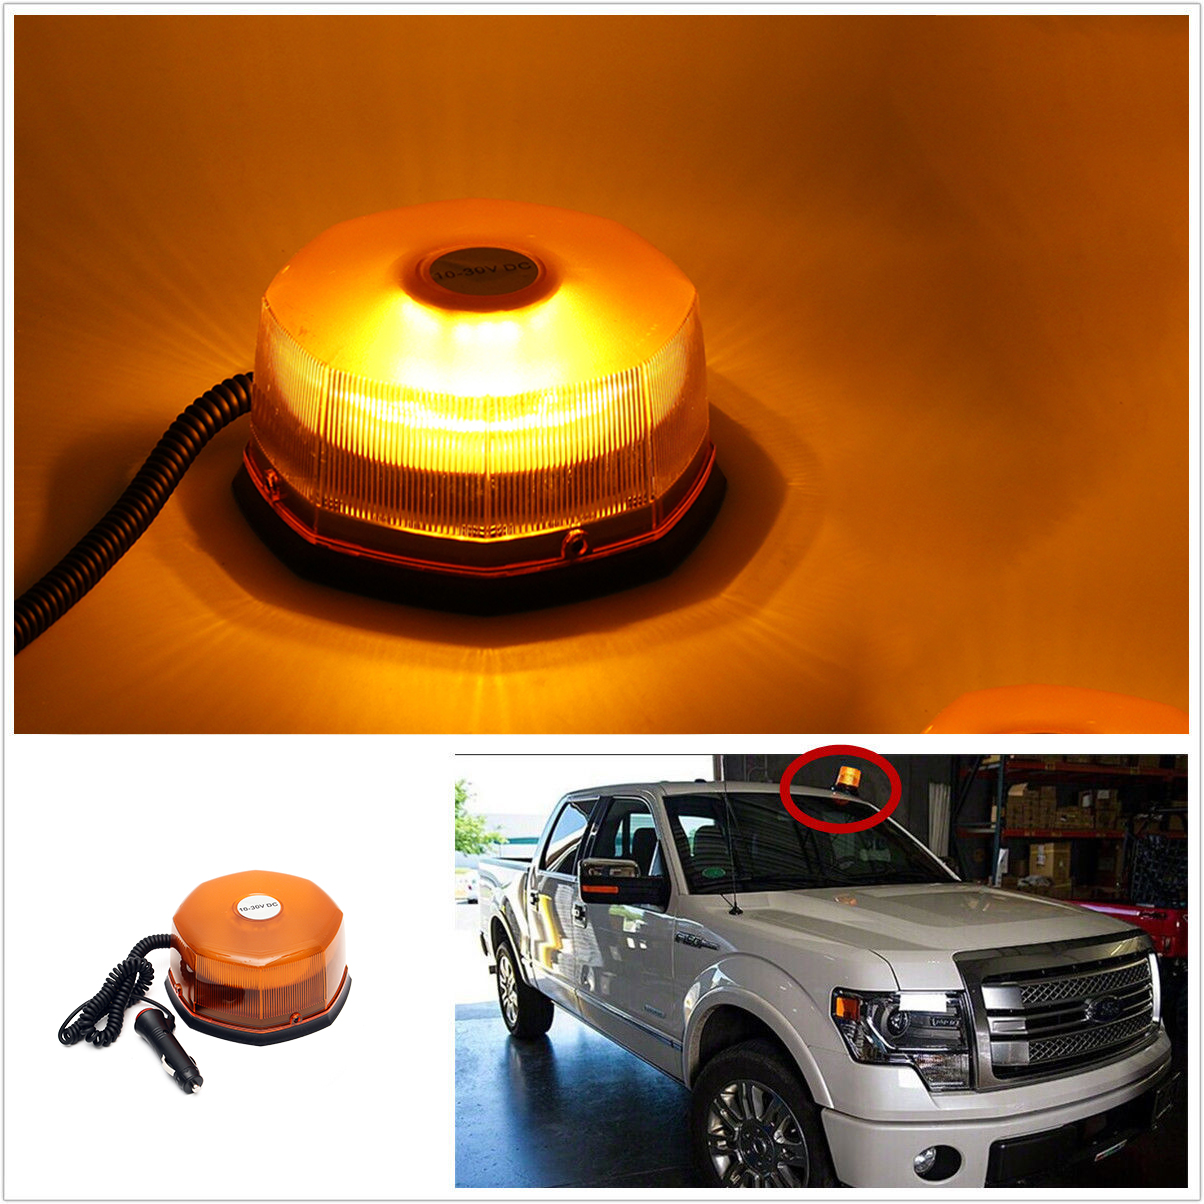 54 LED Strobe Revolving Rotating Beacon Roof Top Emergency Breakdown Light Car Warning Car Accessories